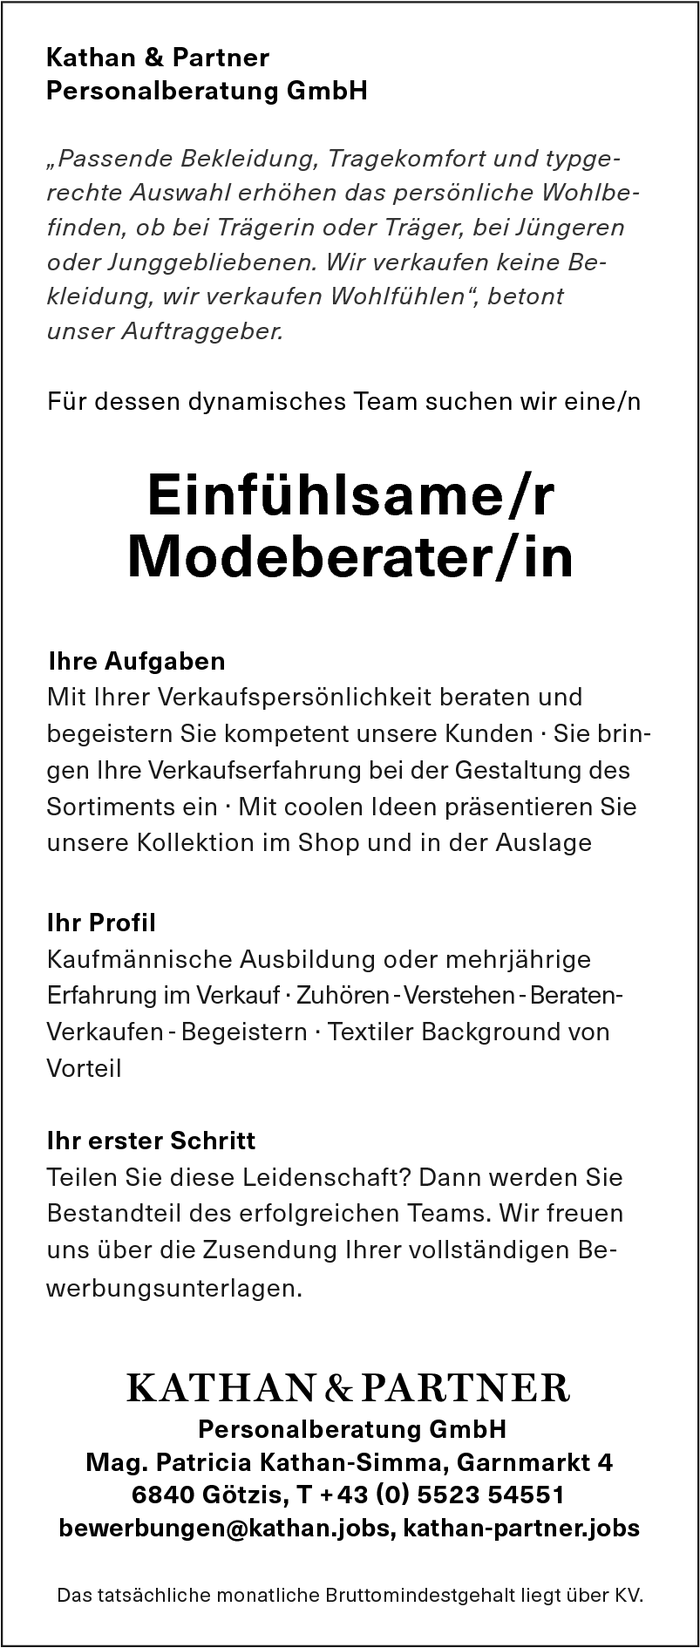 Einfühlsame/r Modeberater/in